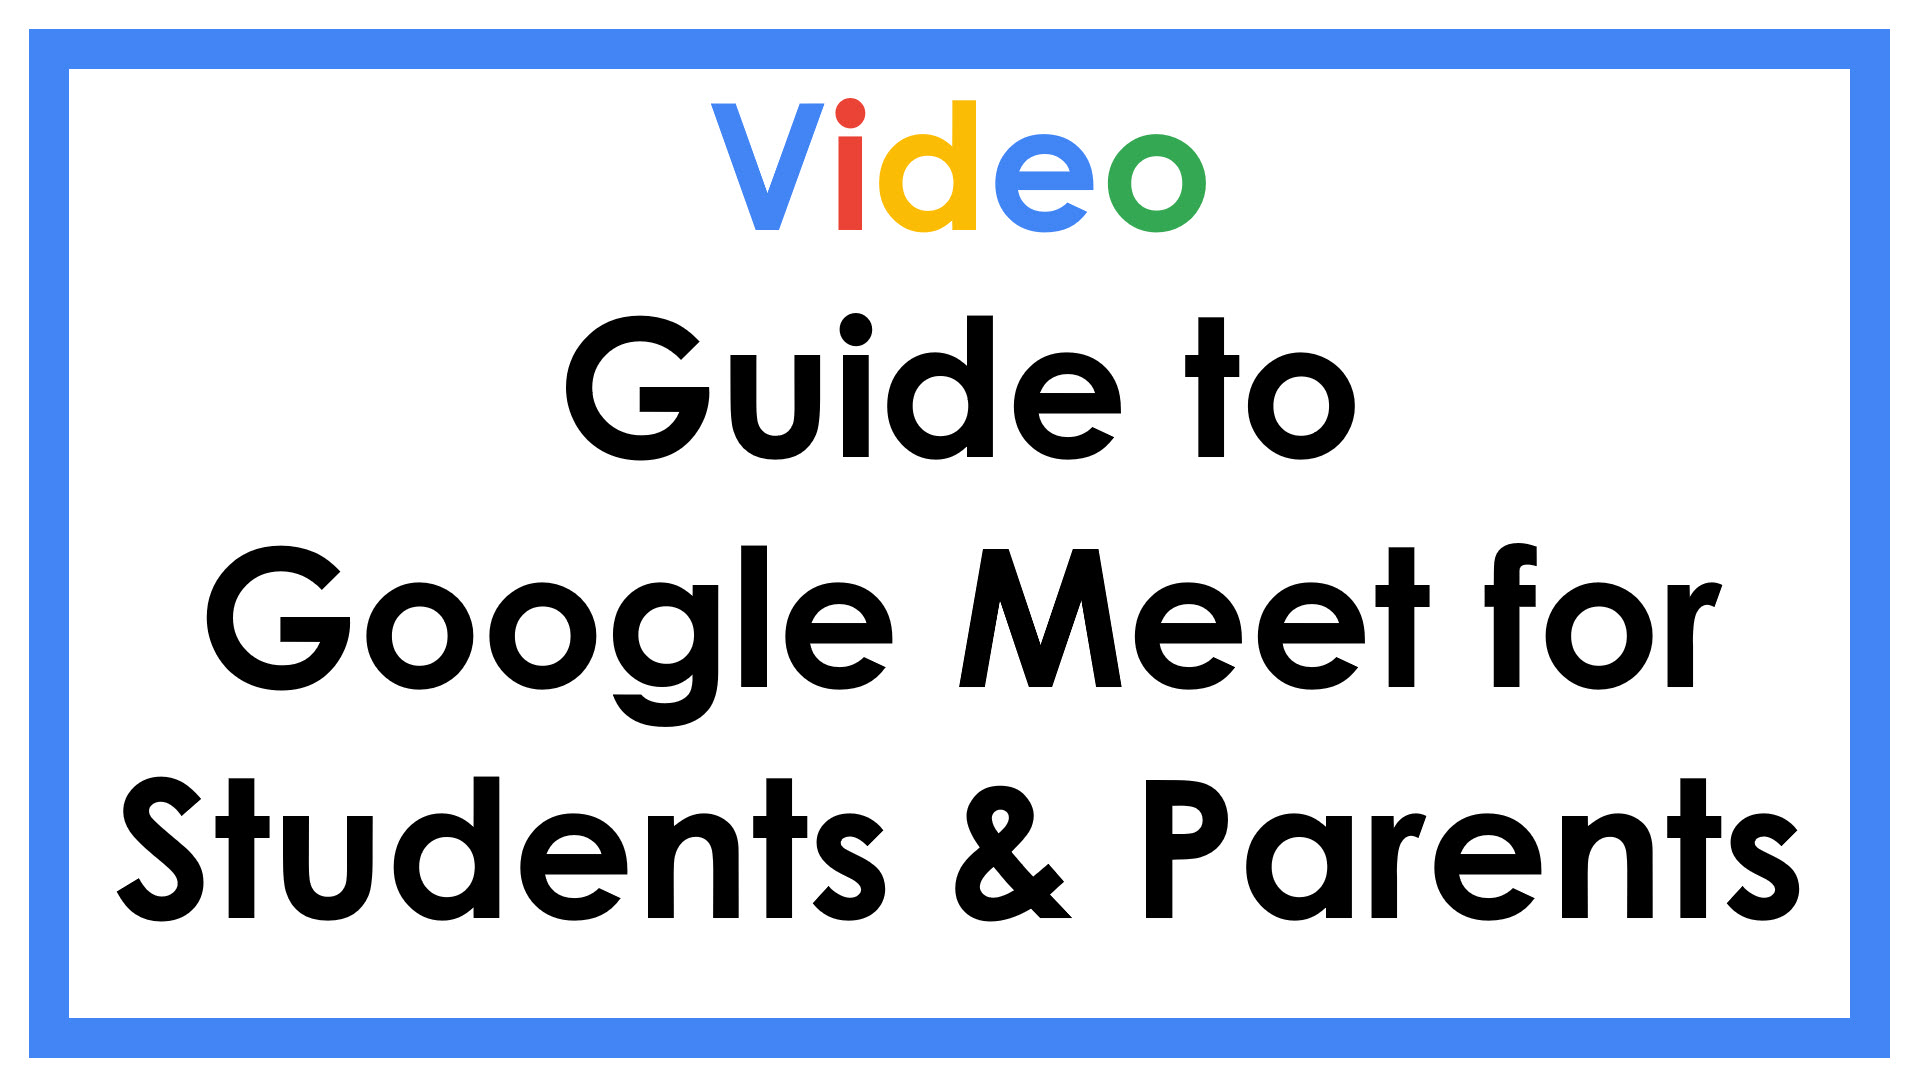 Google Meet Guide for Students & Parents